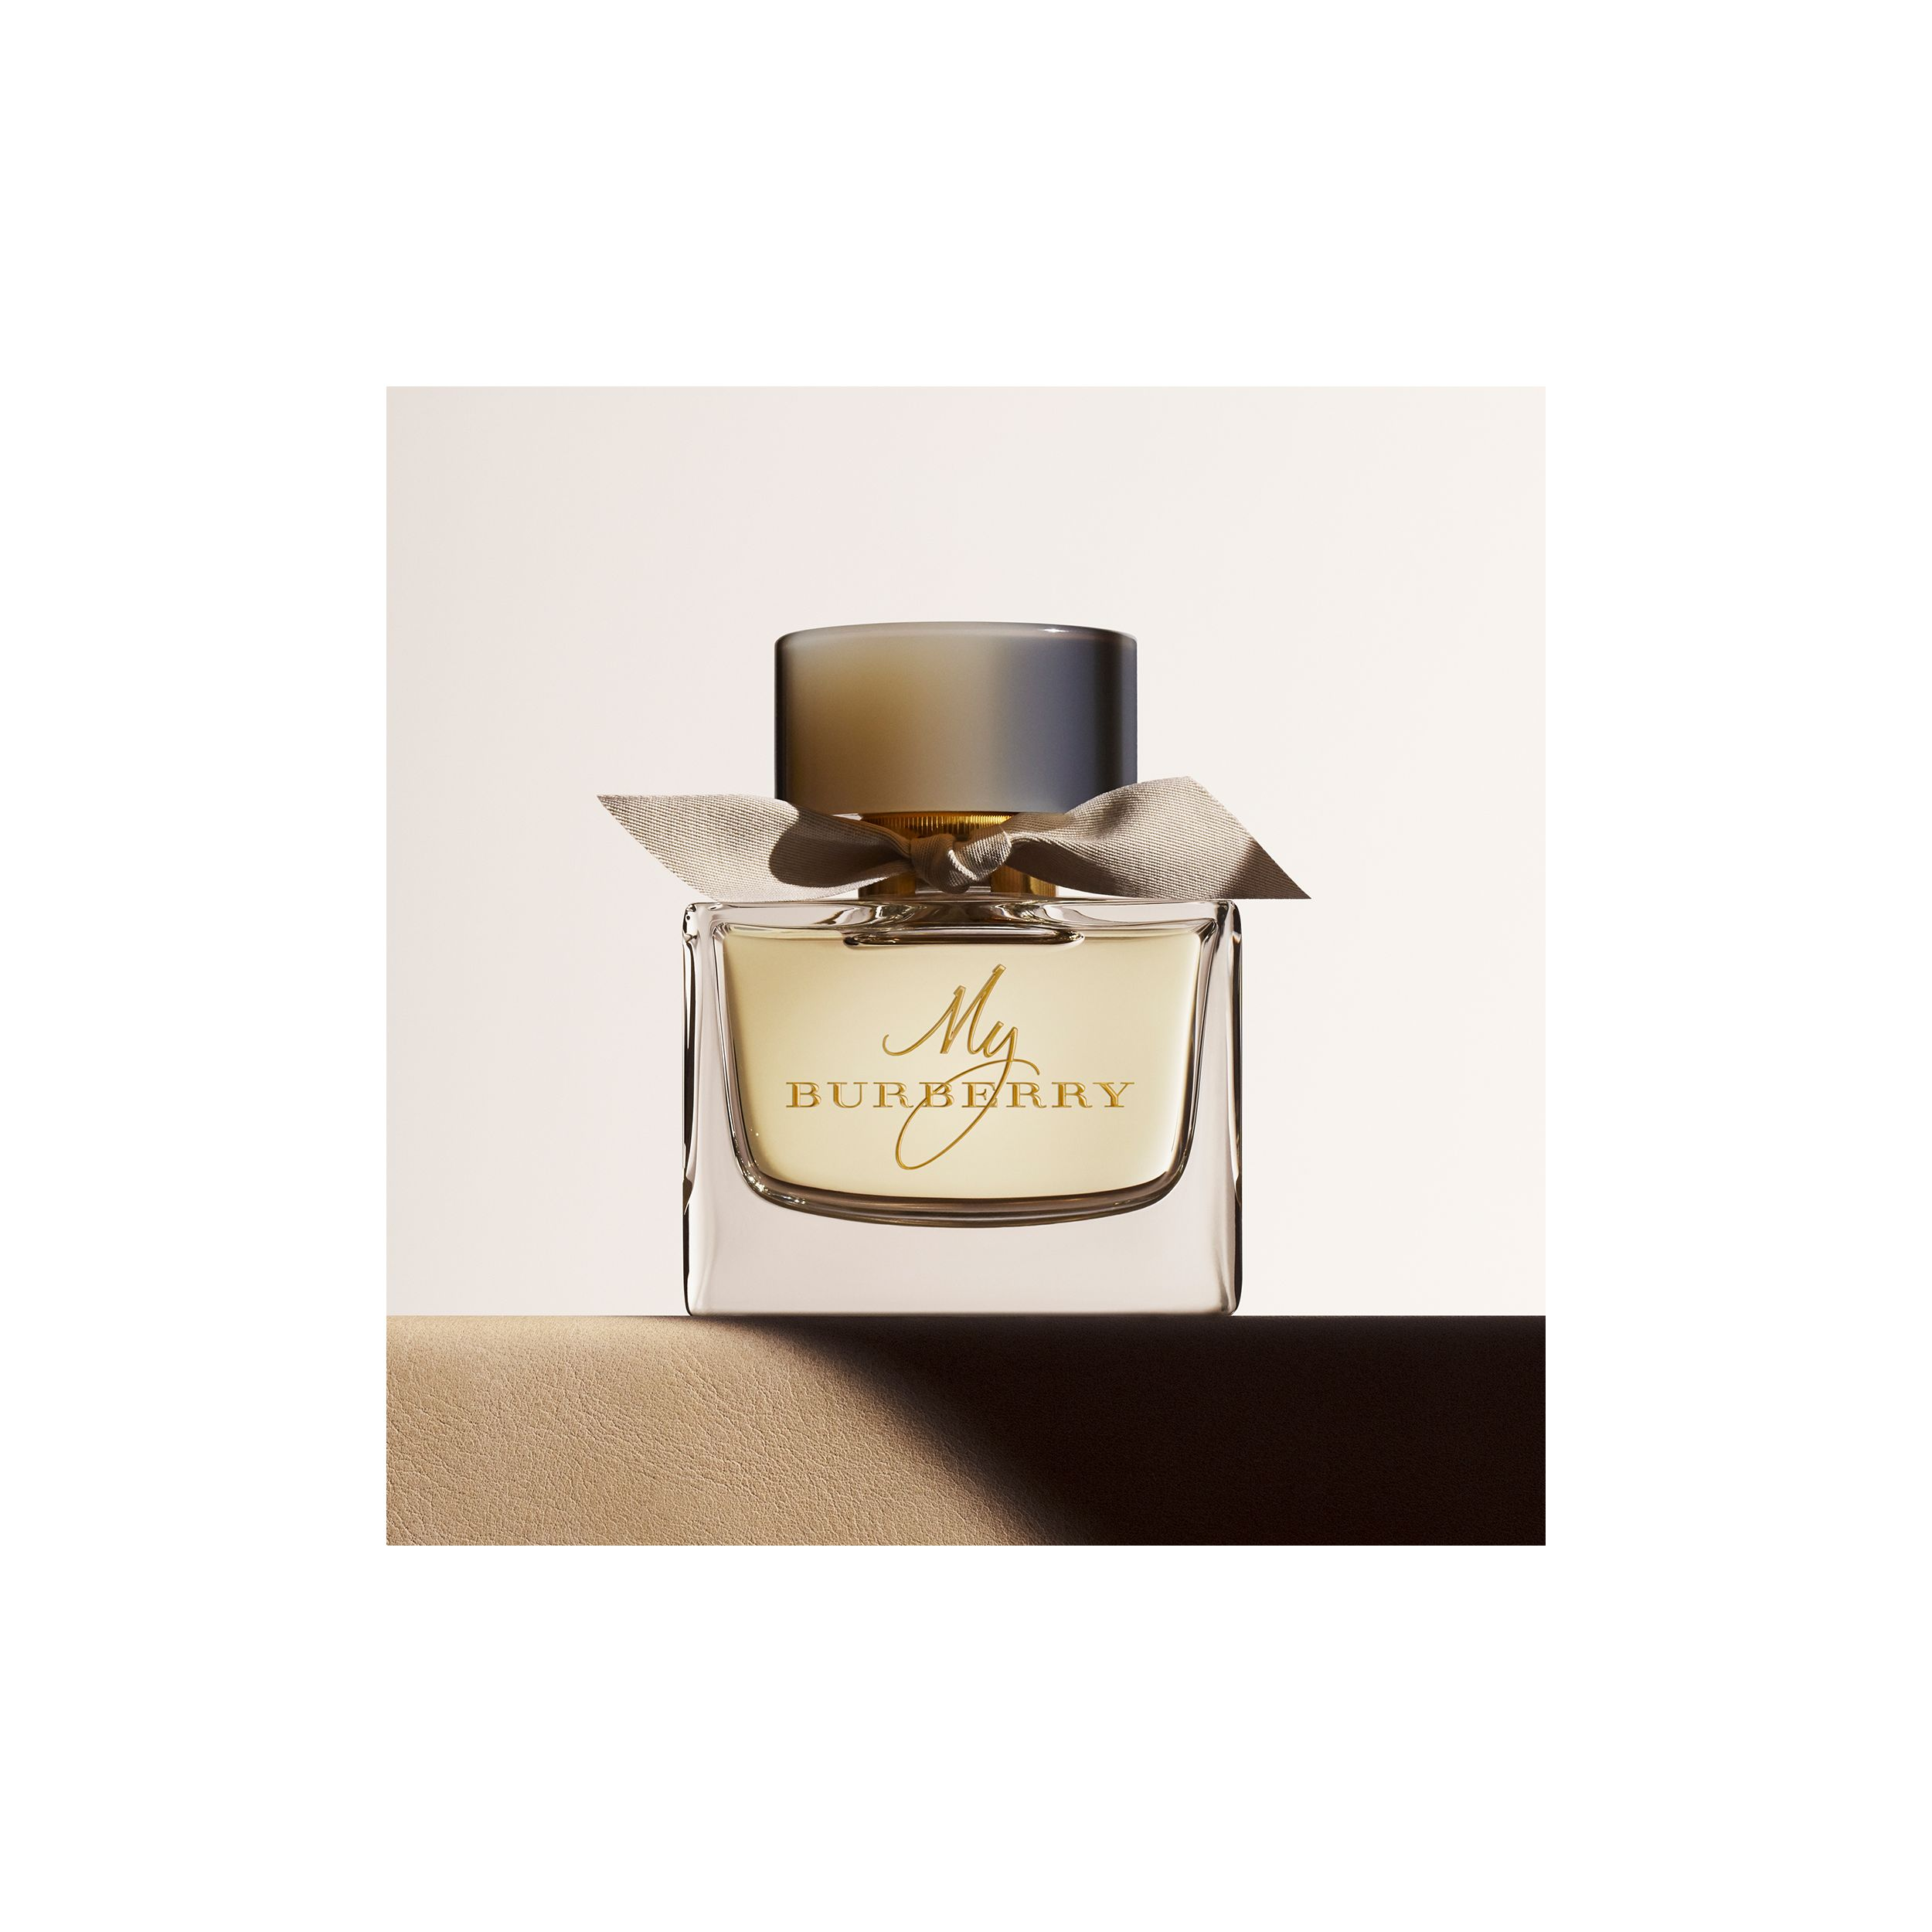 My Burberry Eau de Toilette 50ml - Women | Burberry - 2